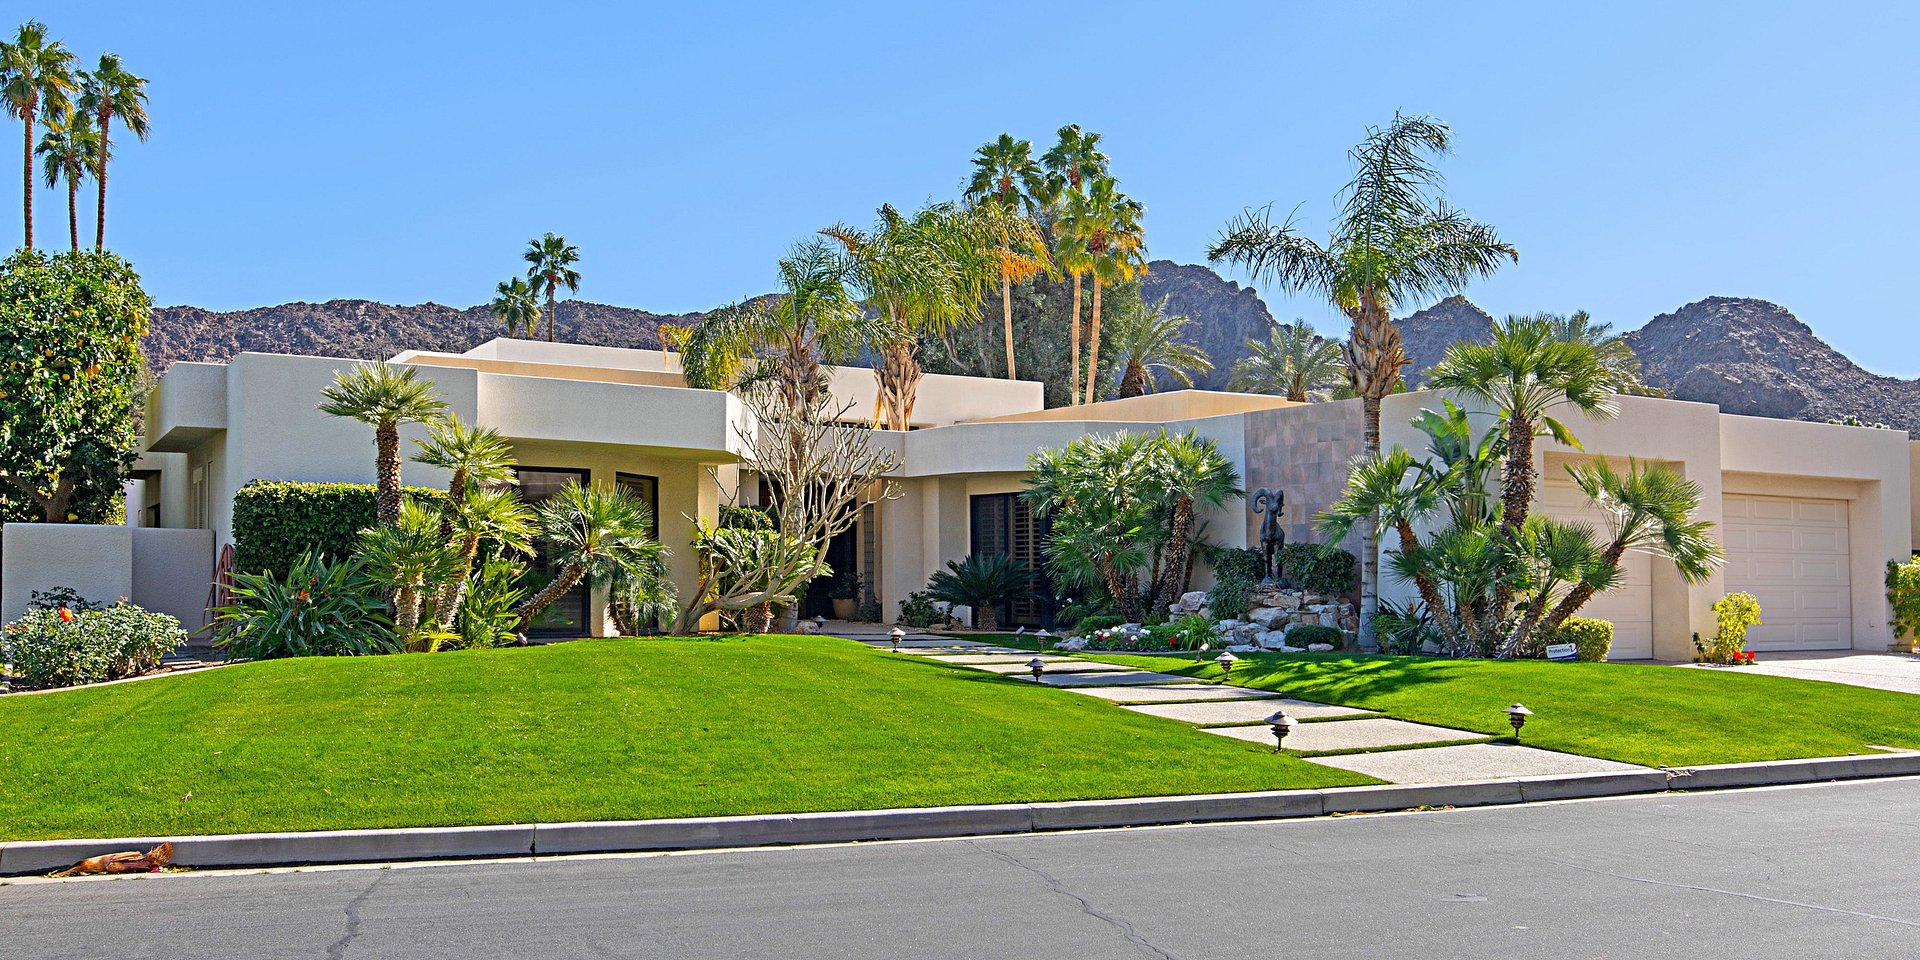 Coldwell Banker Realty Lists an Indian Wells Property Overlooking Country Club for $1.899 Million